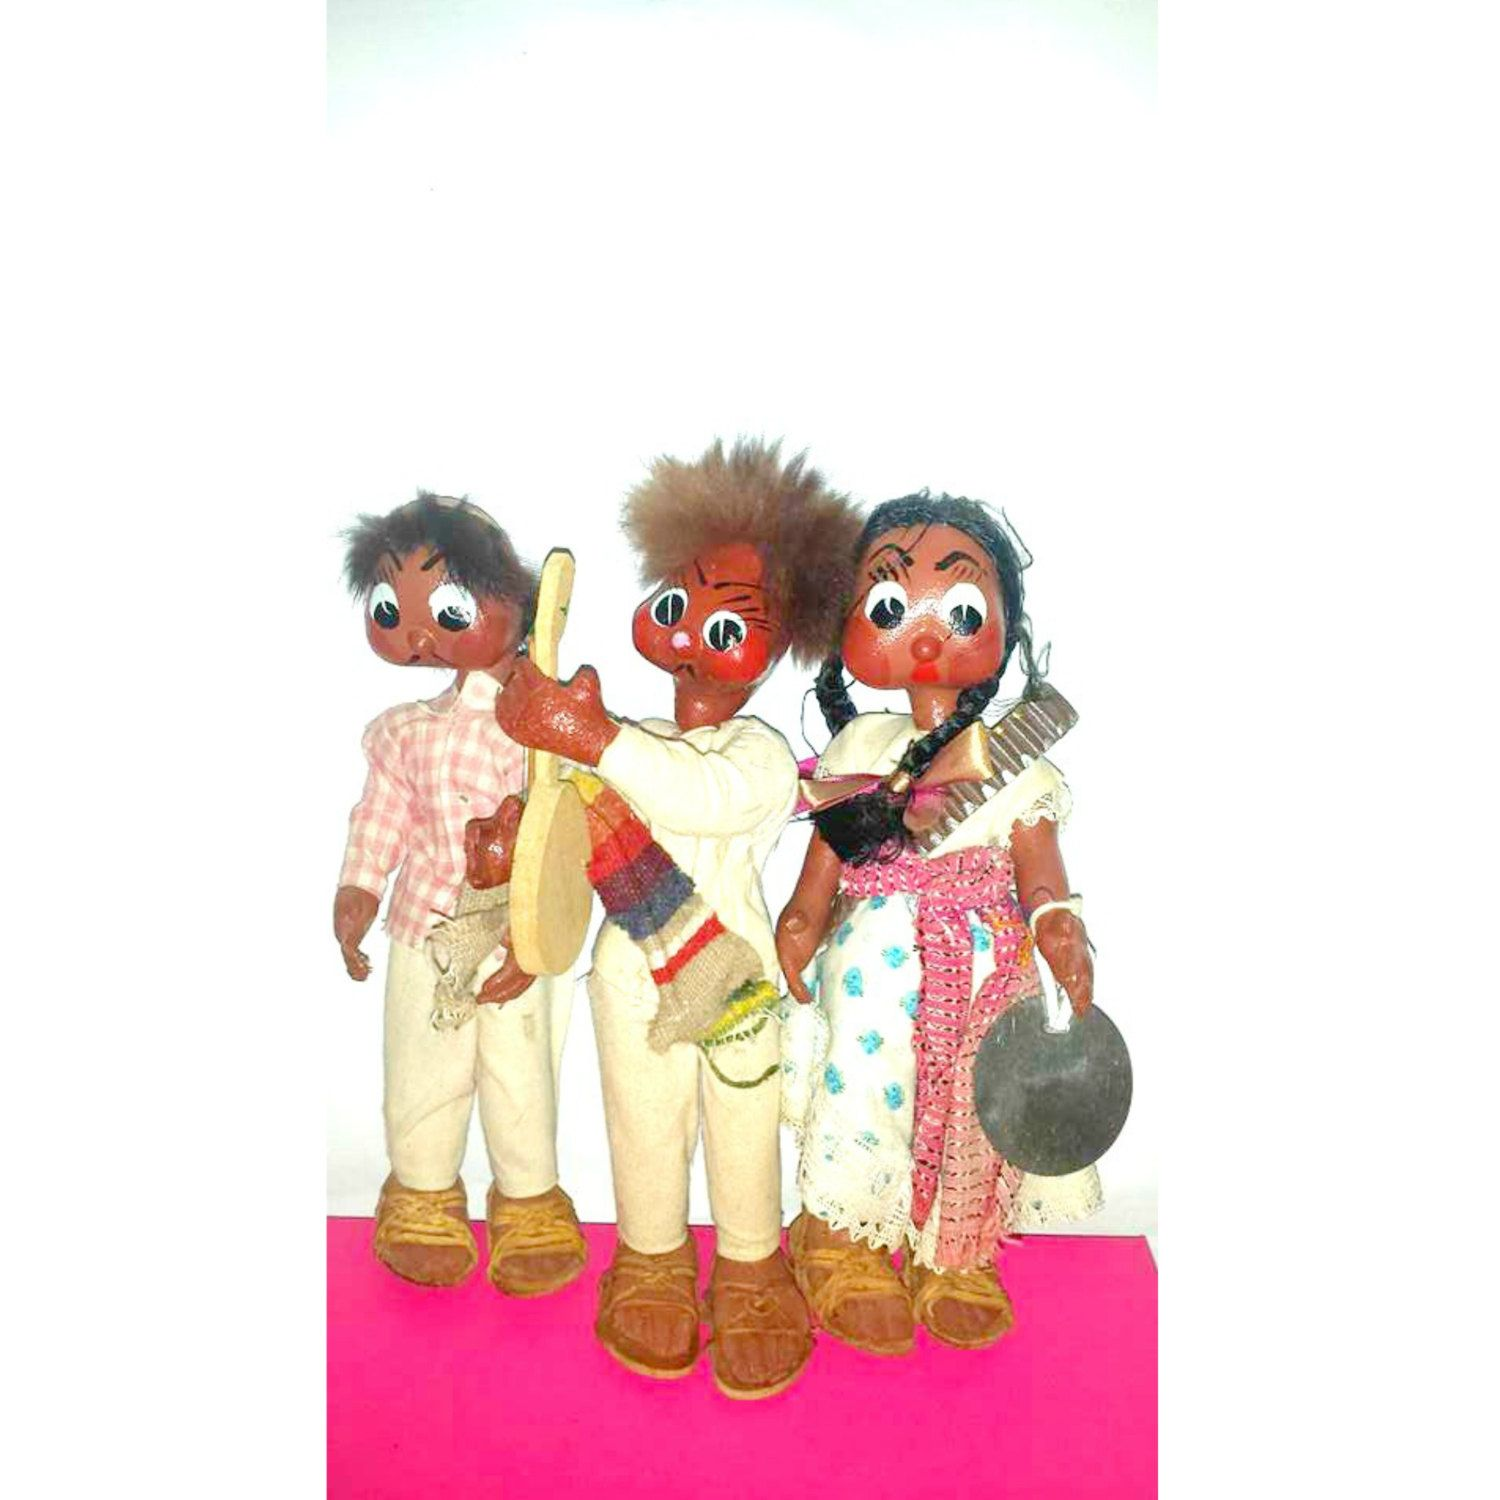 Vintage Mexico Oil Cloth Dolls,Set of 3,Mexican Family Dolls,Spanish Doll,Guitar Player,Dolls in Sandals,Paper Mache Dolls,Circa 1930s by JunkYardBlonde on Etsy #spanishdolls